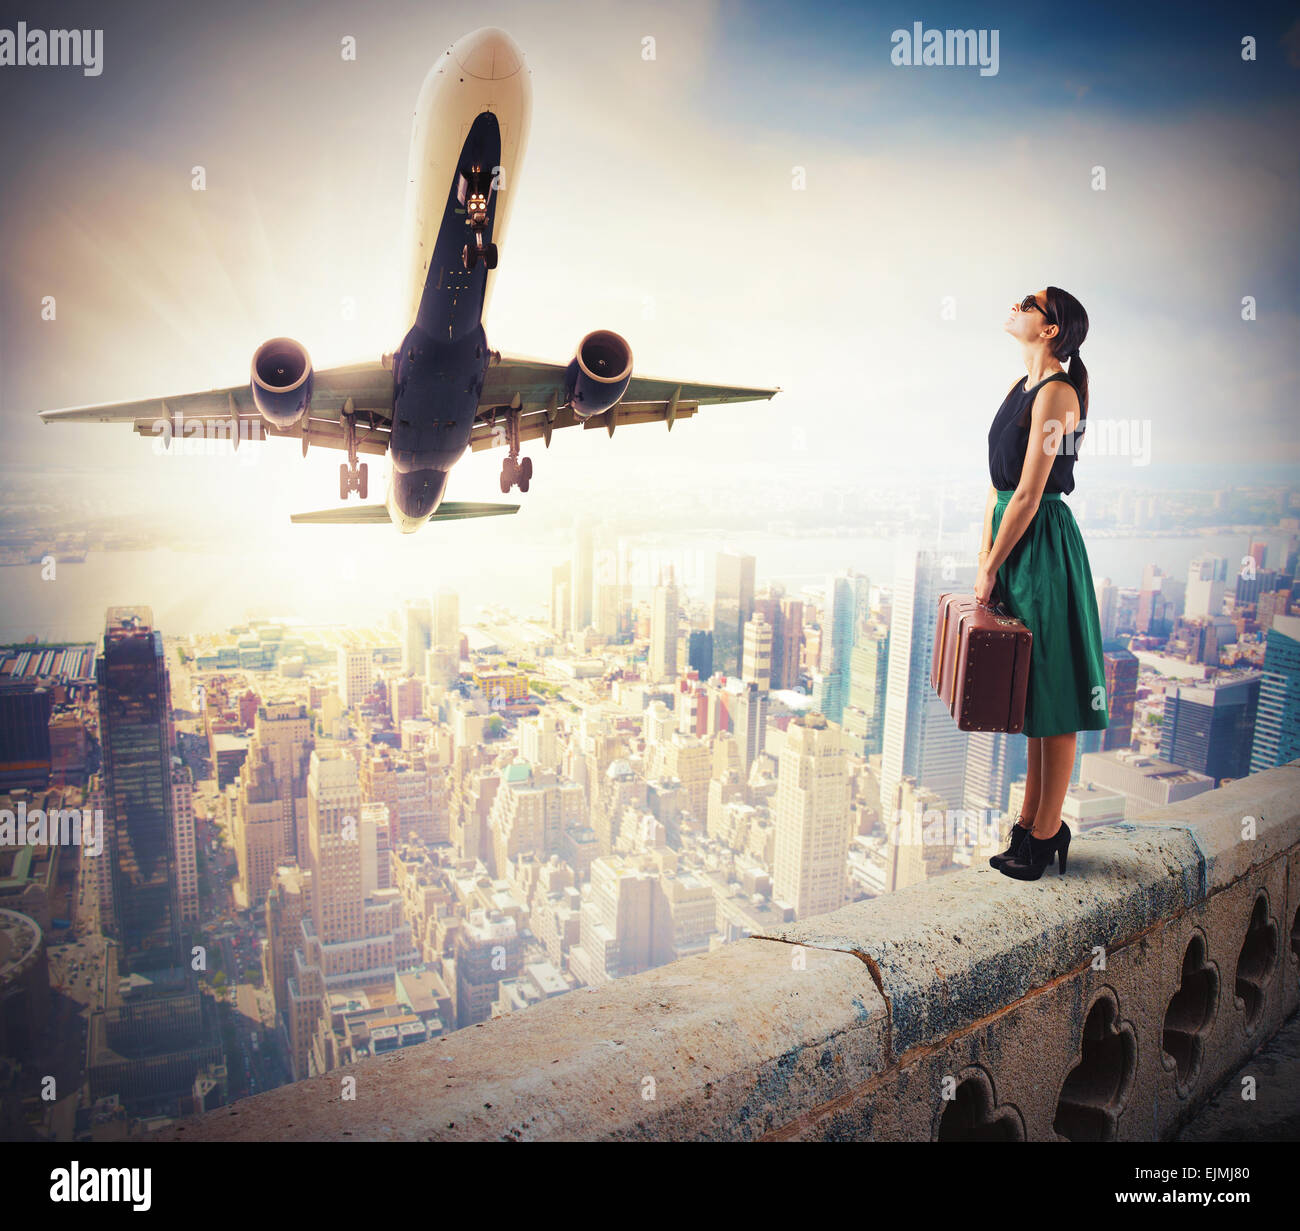 Tourists watch the takeoff - Stock Image